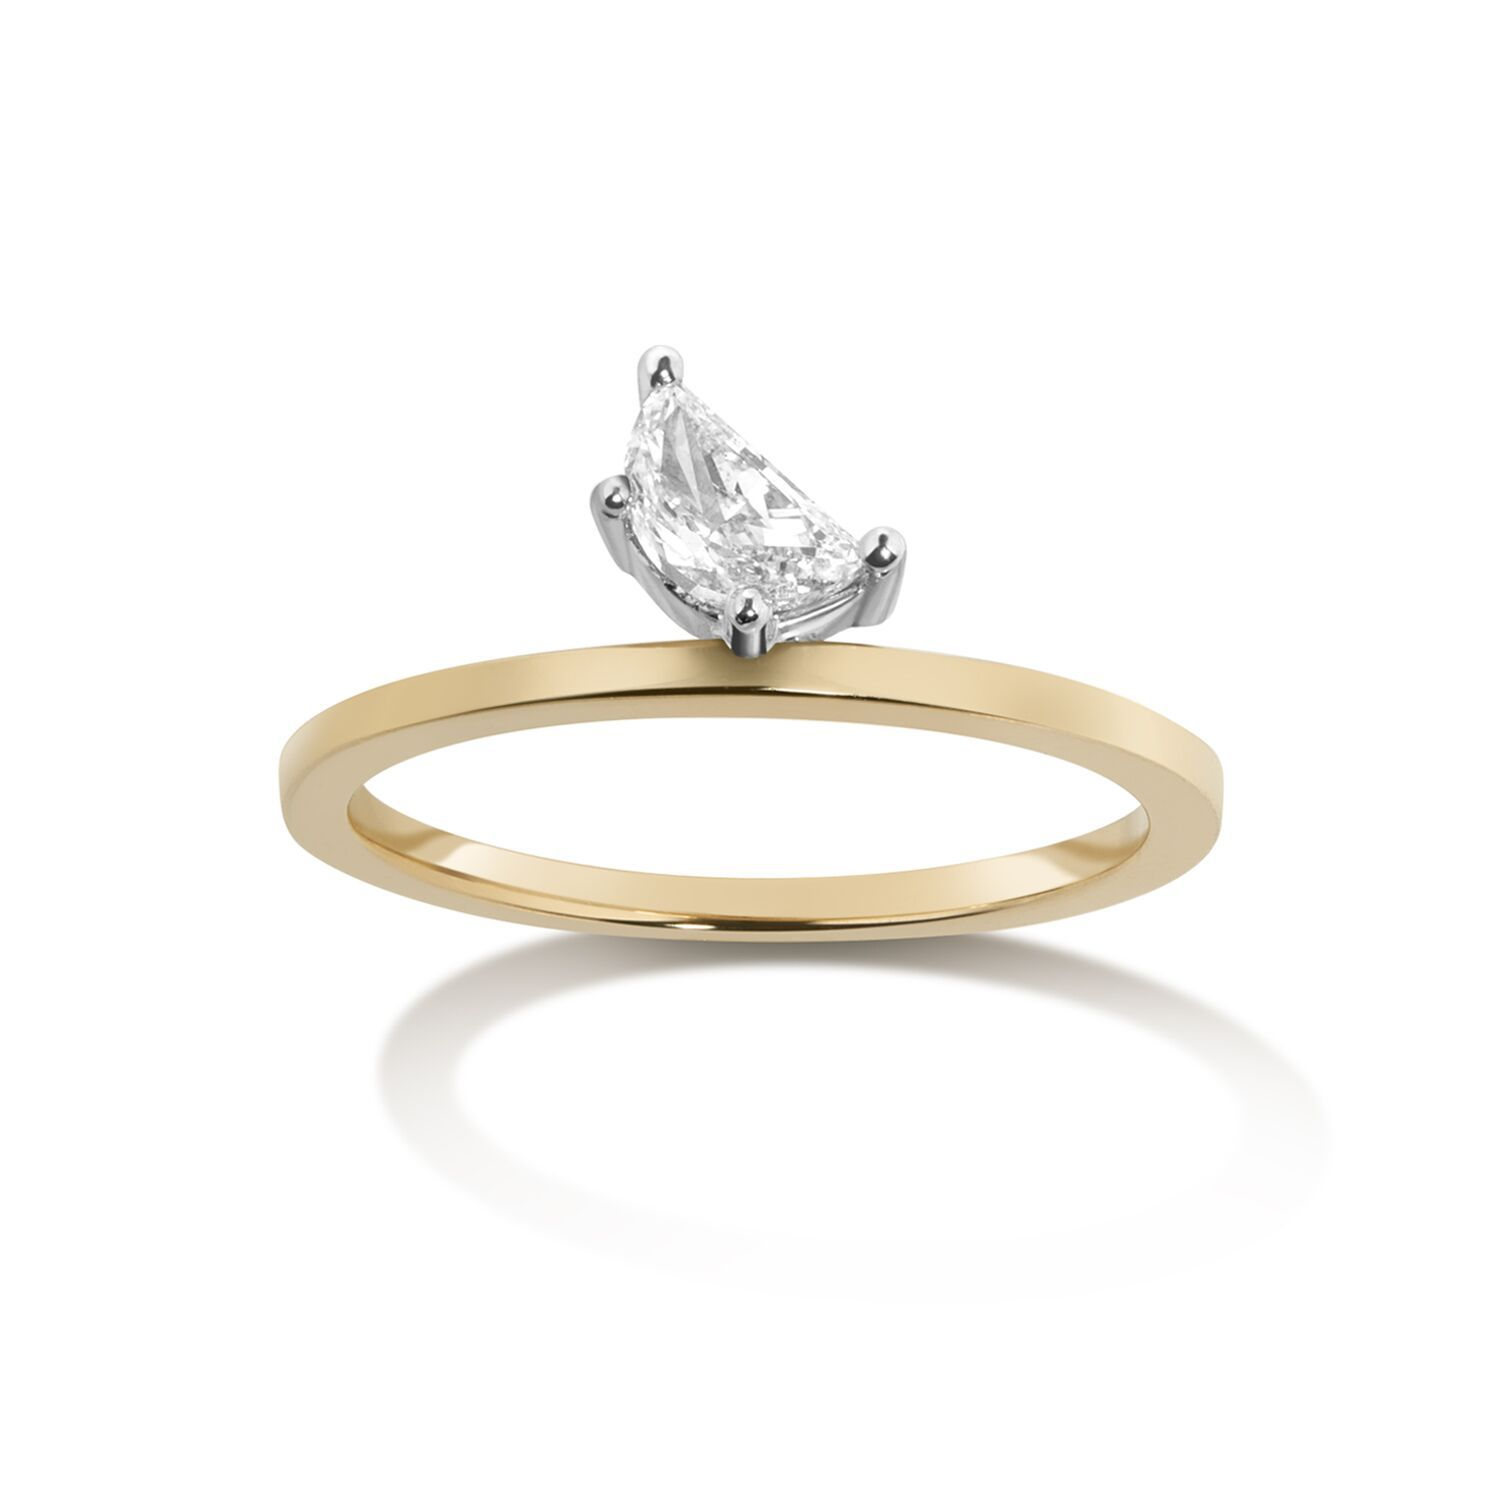 Moon diamond engagement ring with yellow gold band on a white background.